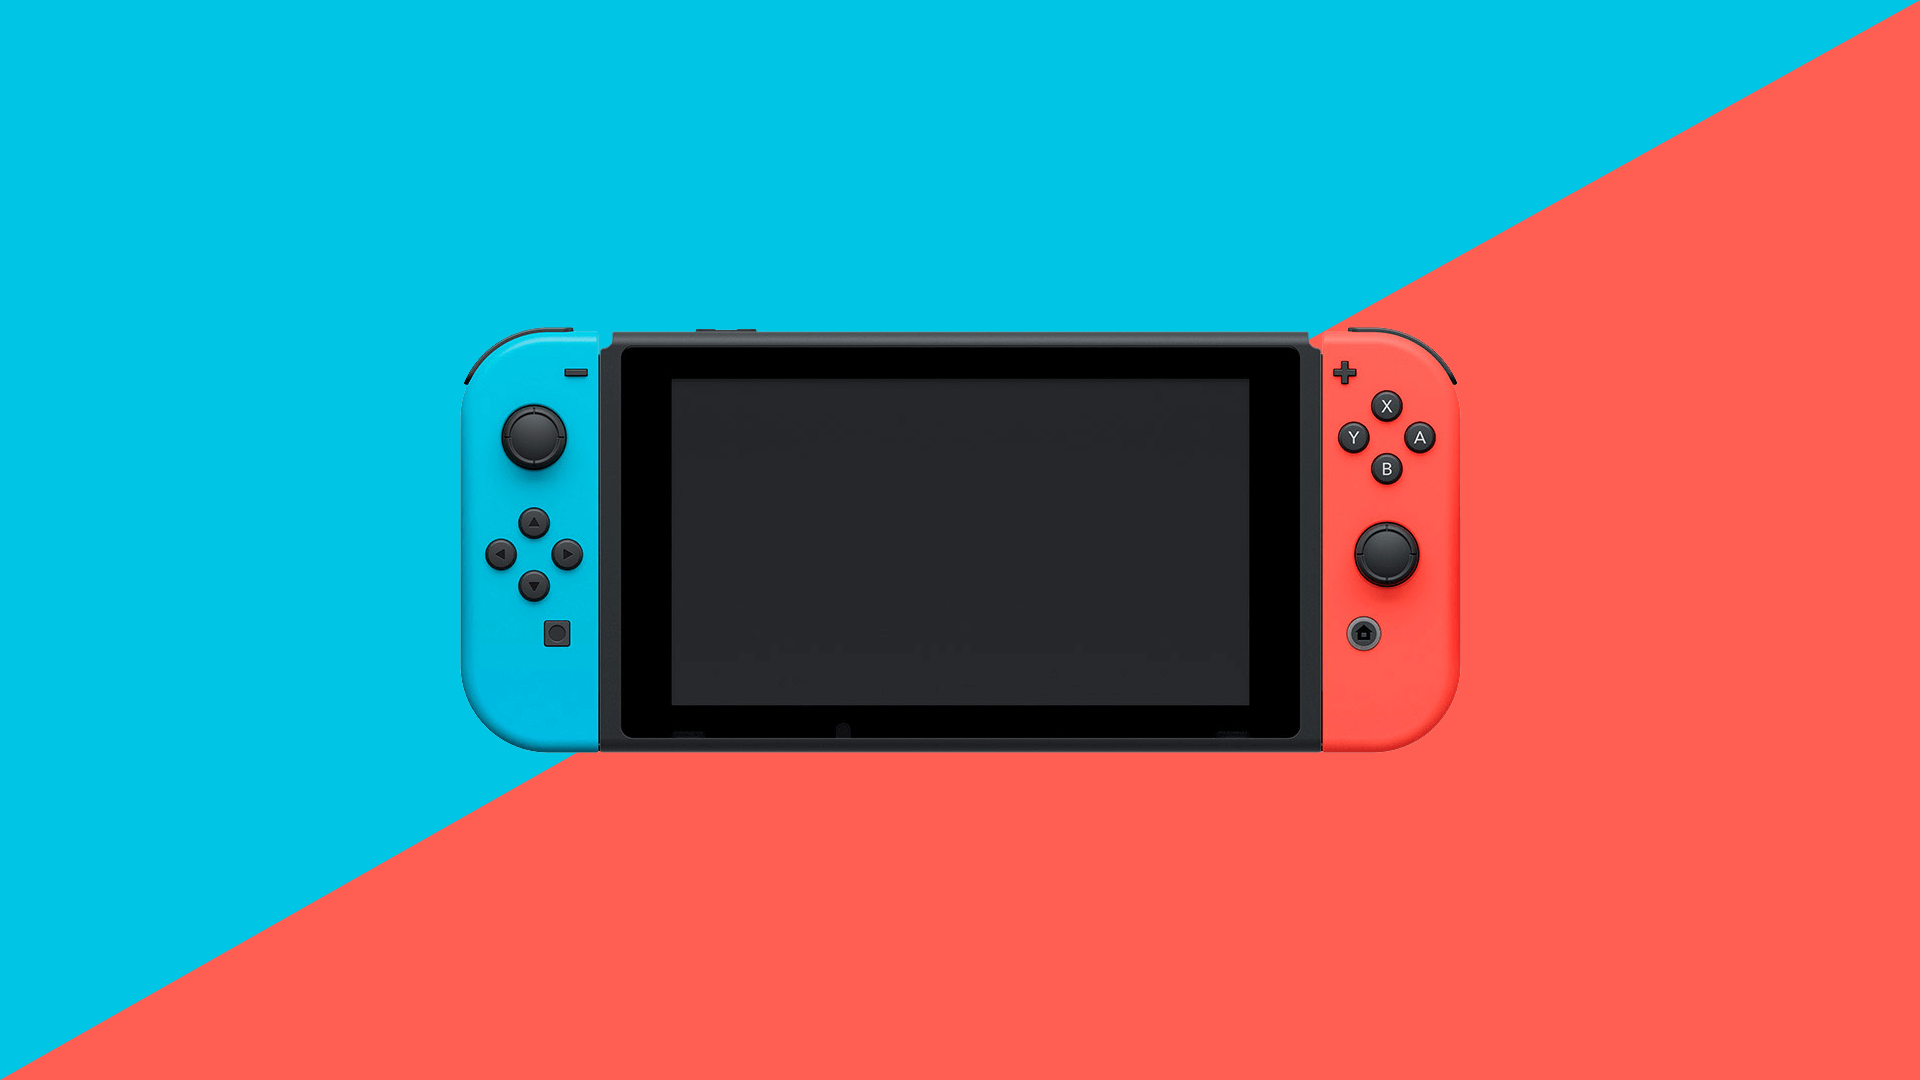 Nintendo announce Nintendo Switch Lite, a compact handheld-dedicated device